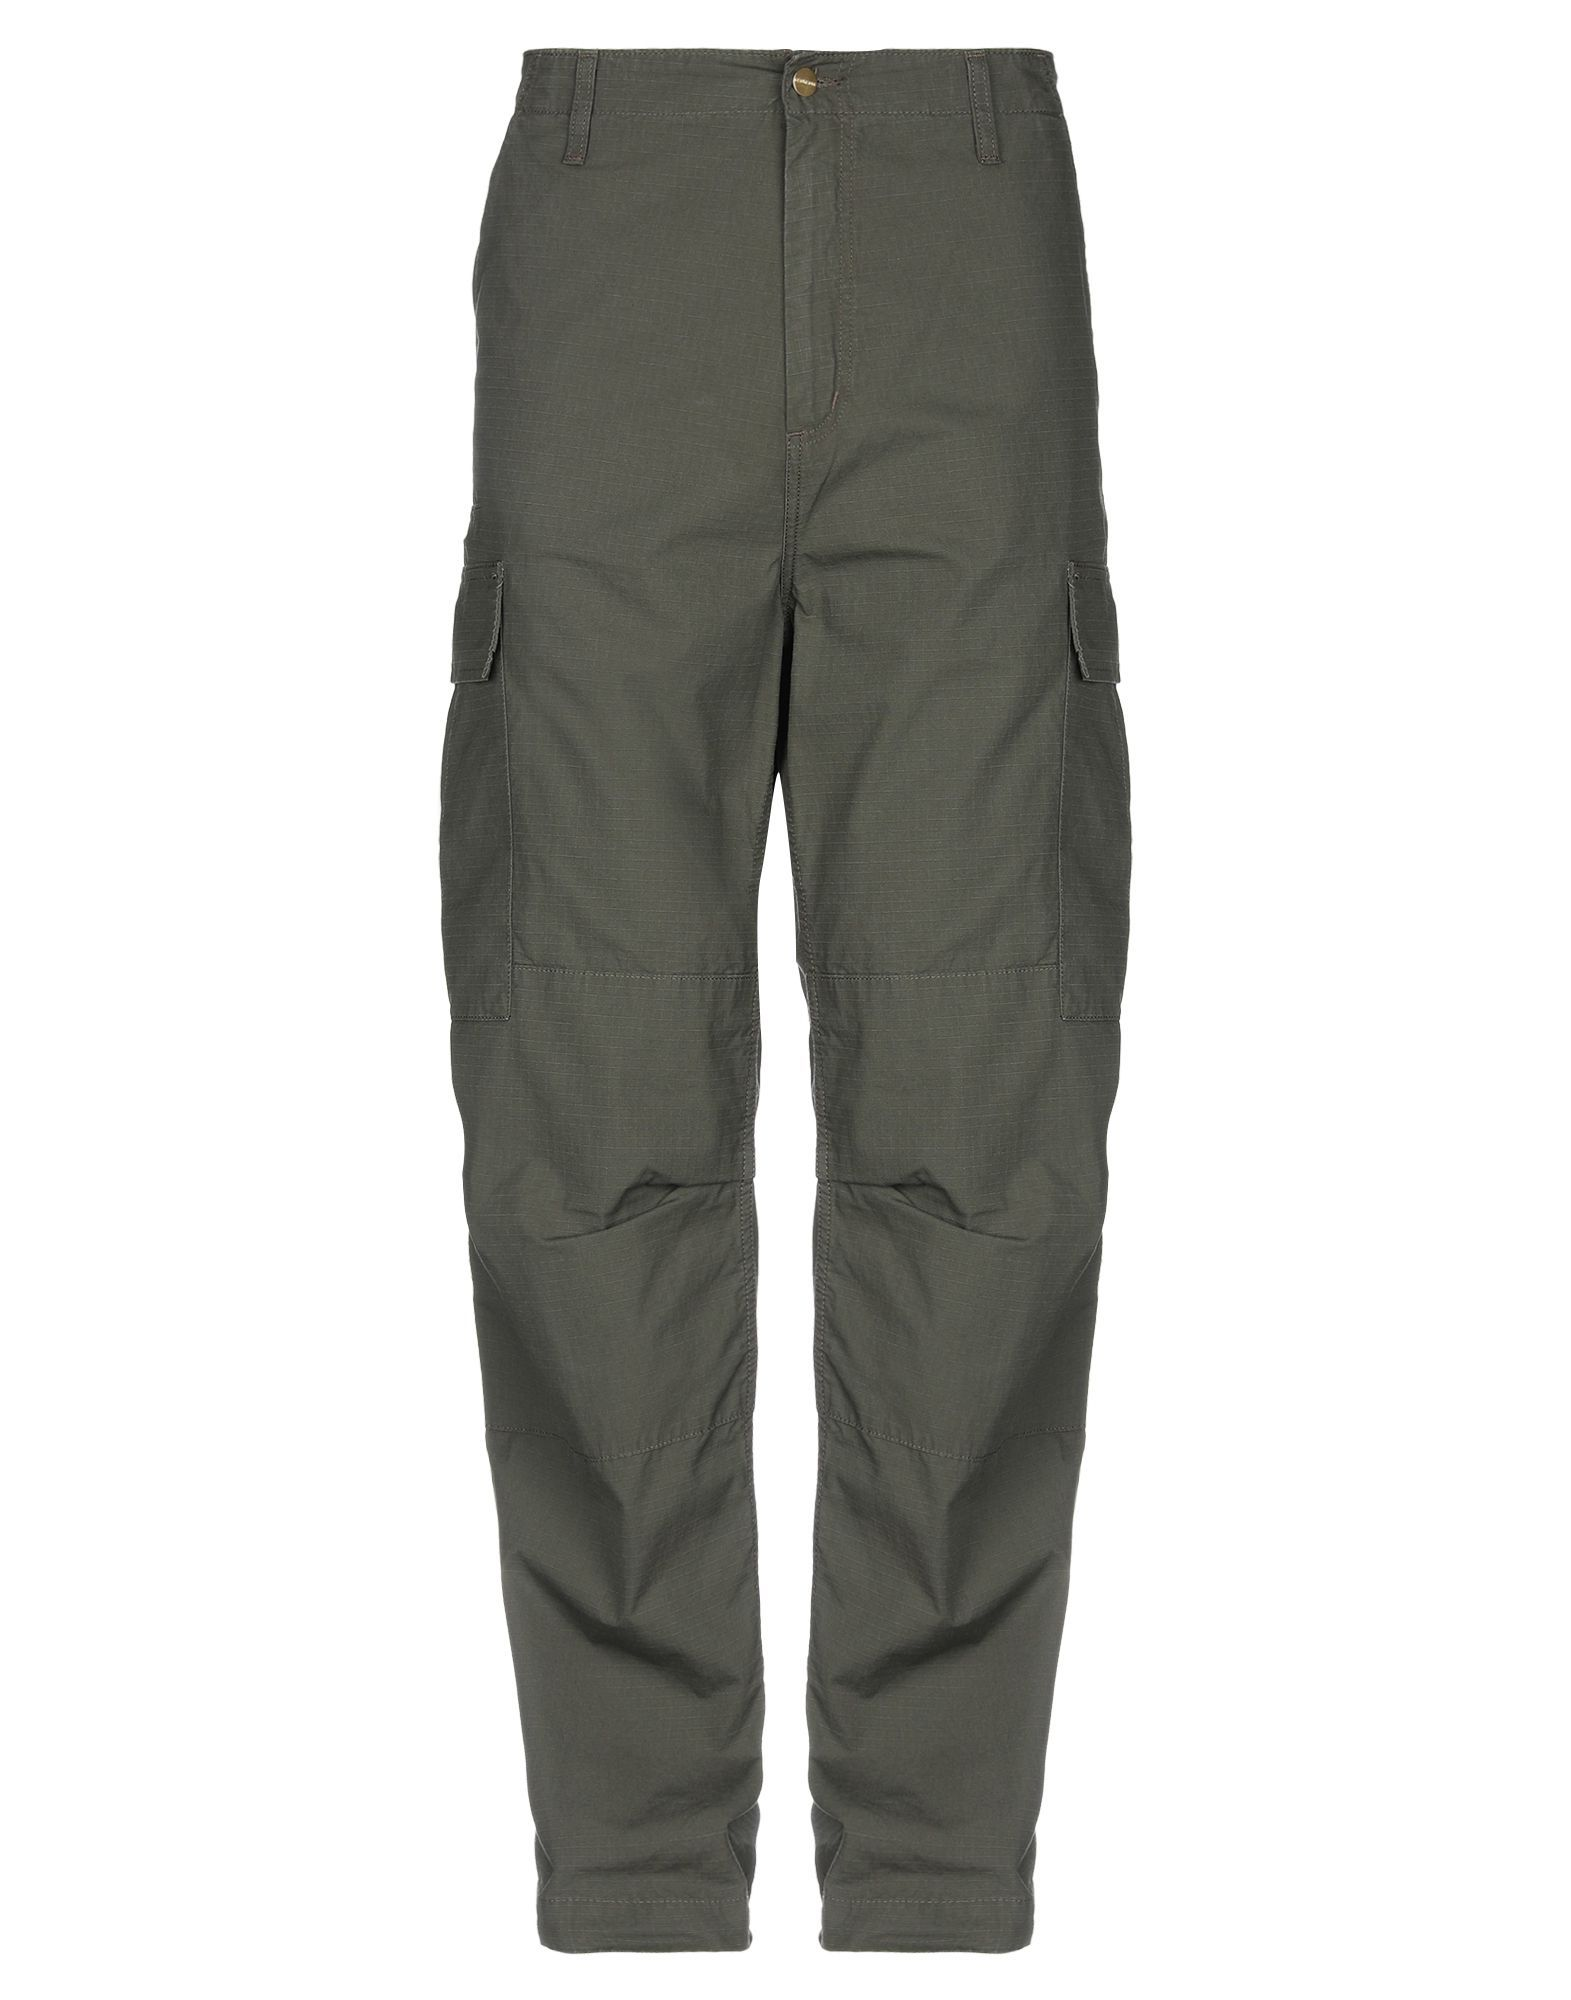 Carhartt Military Green Cotton Trousers